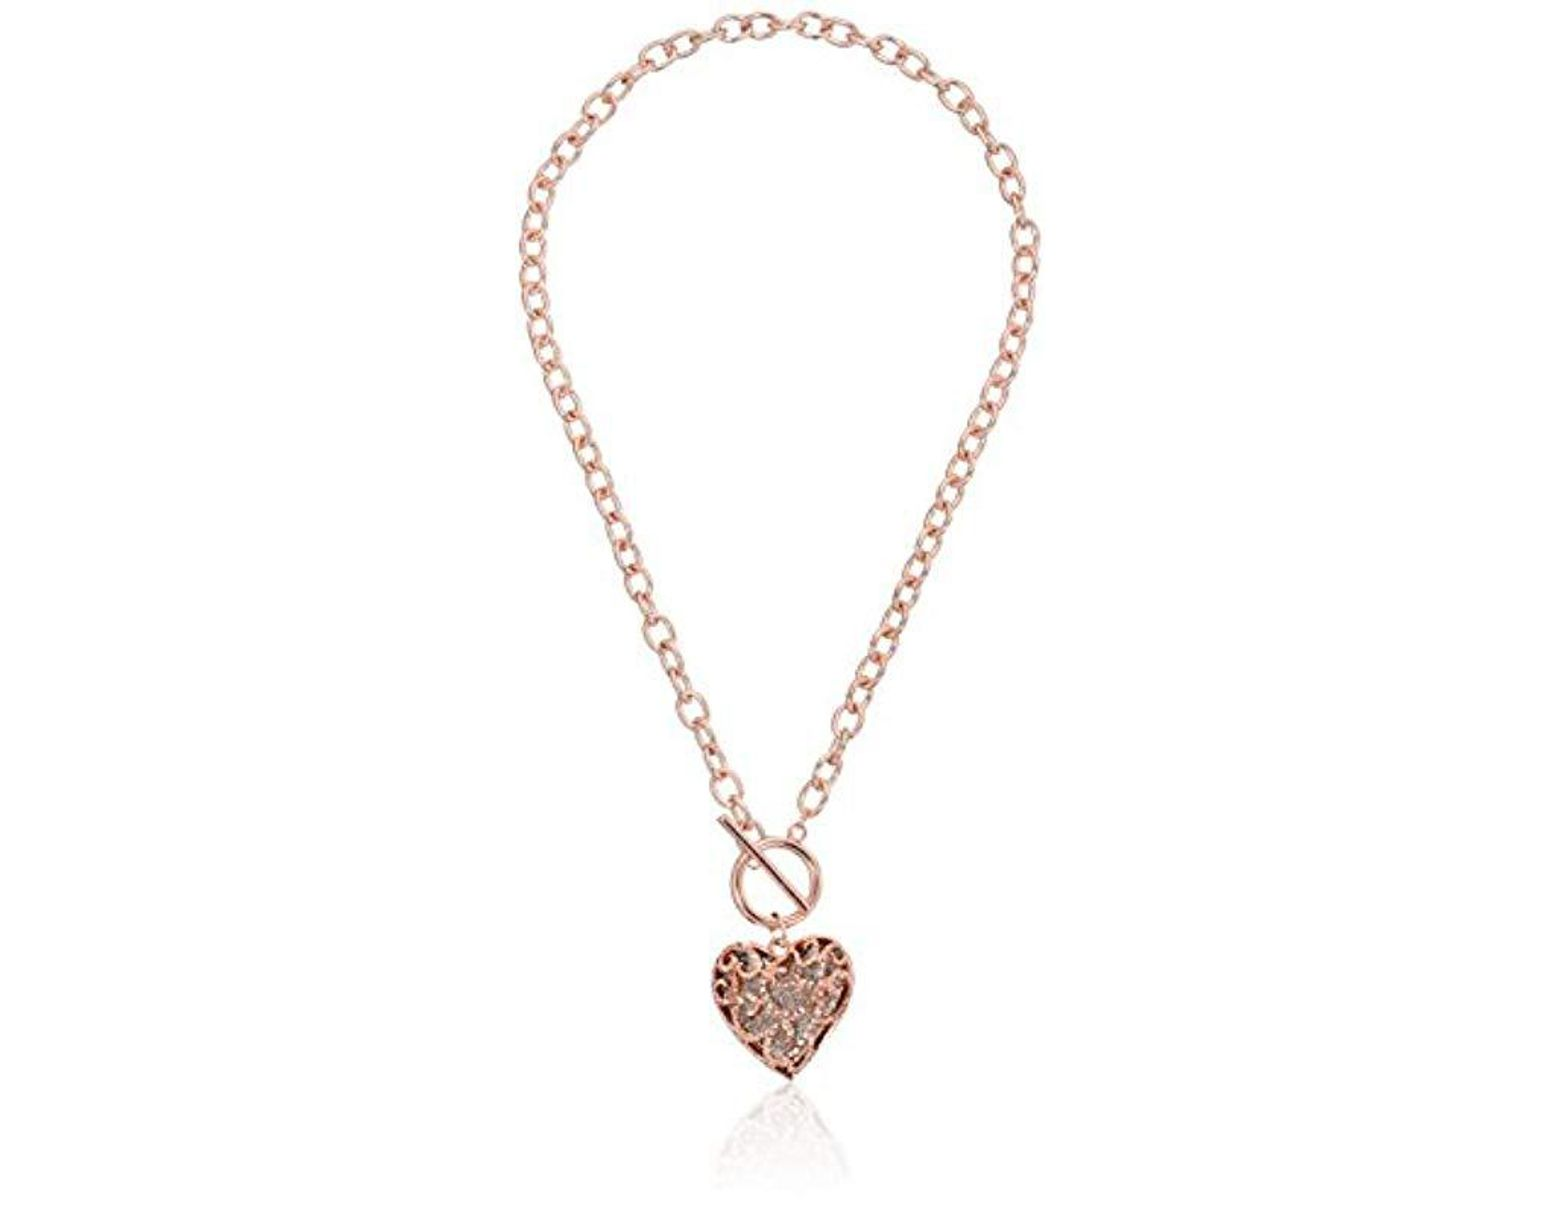 3cd68500fc94a Women's Metallic S Swirl Pave Heart Toggle Pendant Necklace